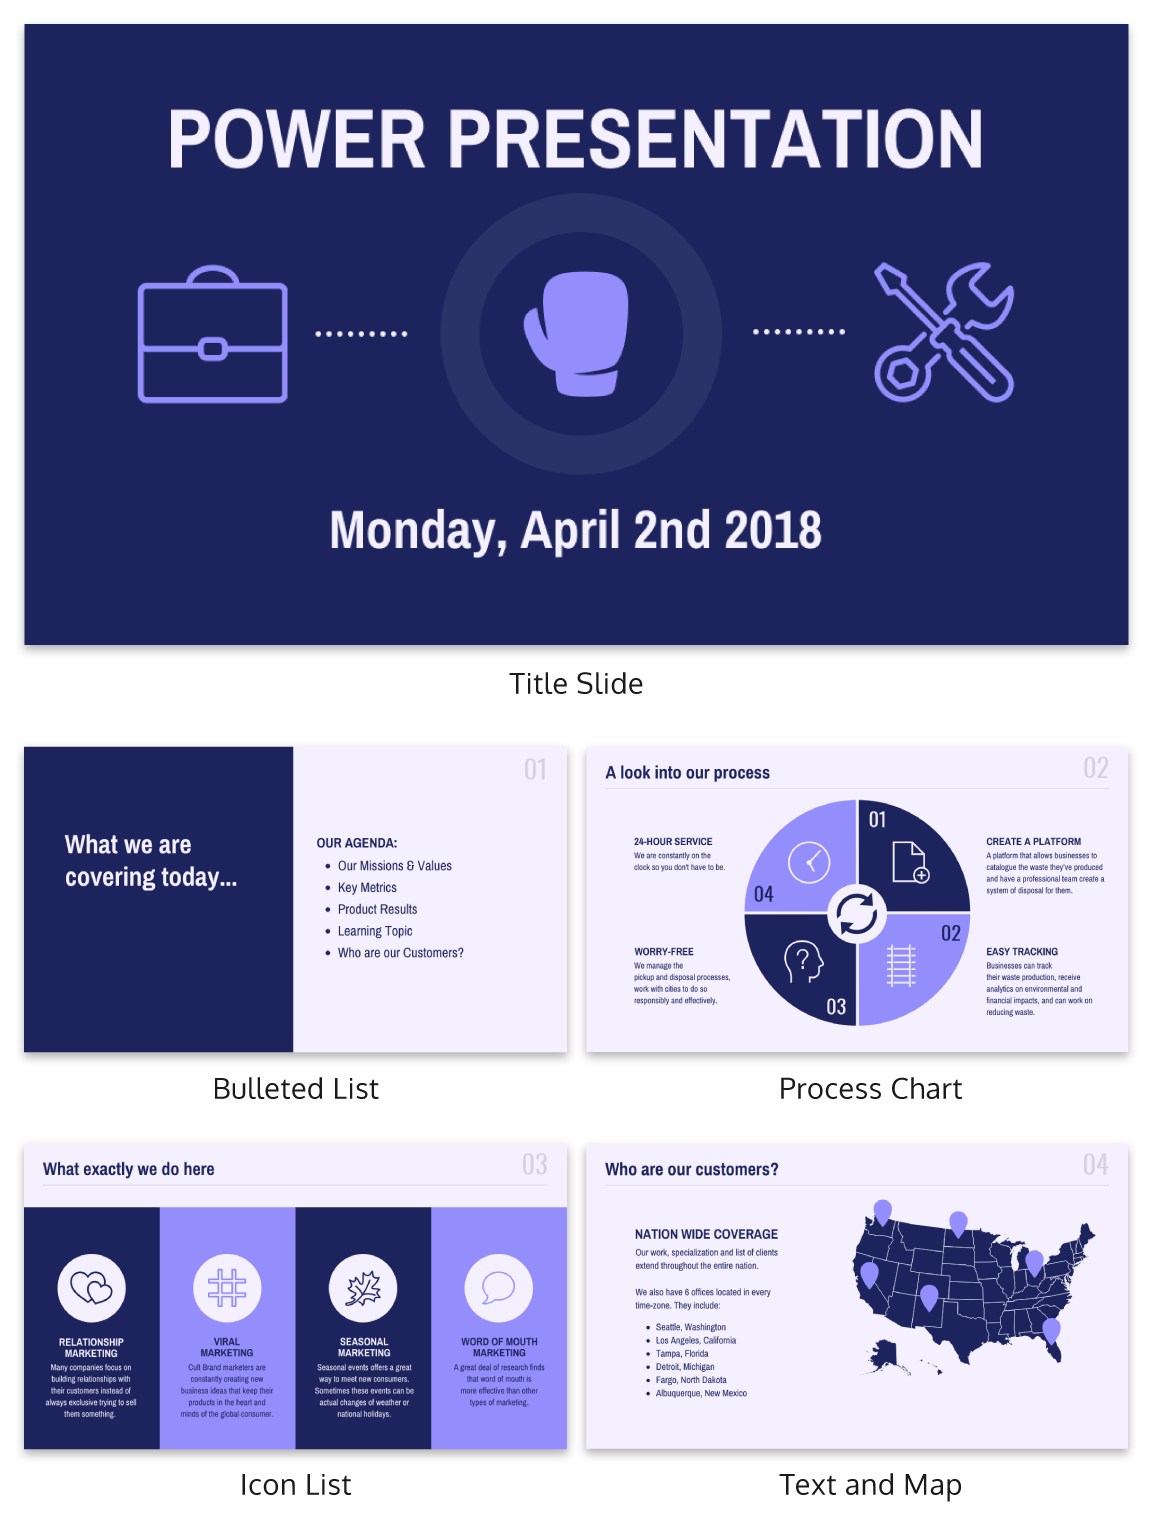 20 Presentation Templates And Design Best Practices To